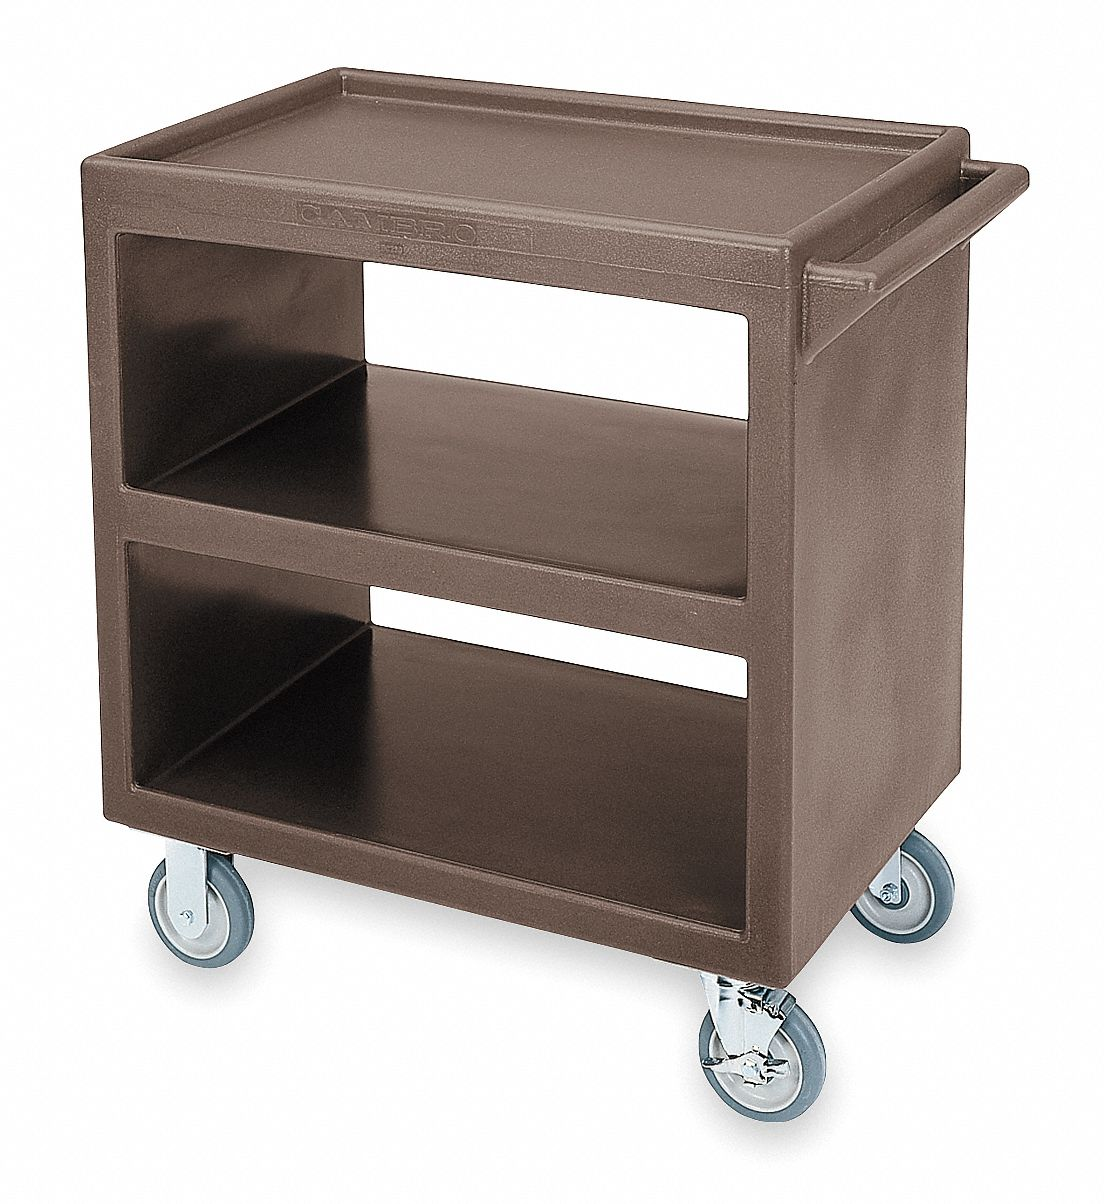 Cambro 33 1 4 Quot X 20 Quot X 34 5 8 Quot Polyethylene Service Cart With 500 Lb Load Capacity Brown